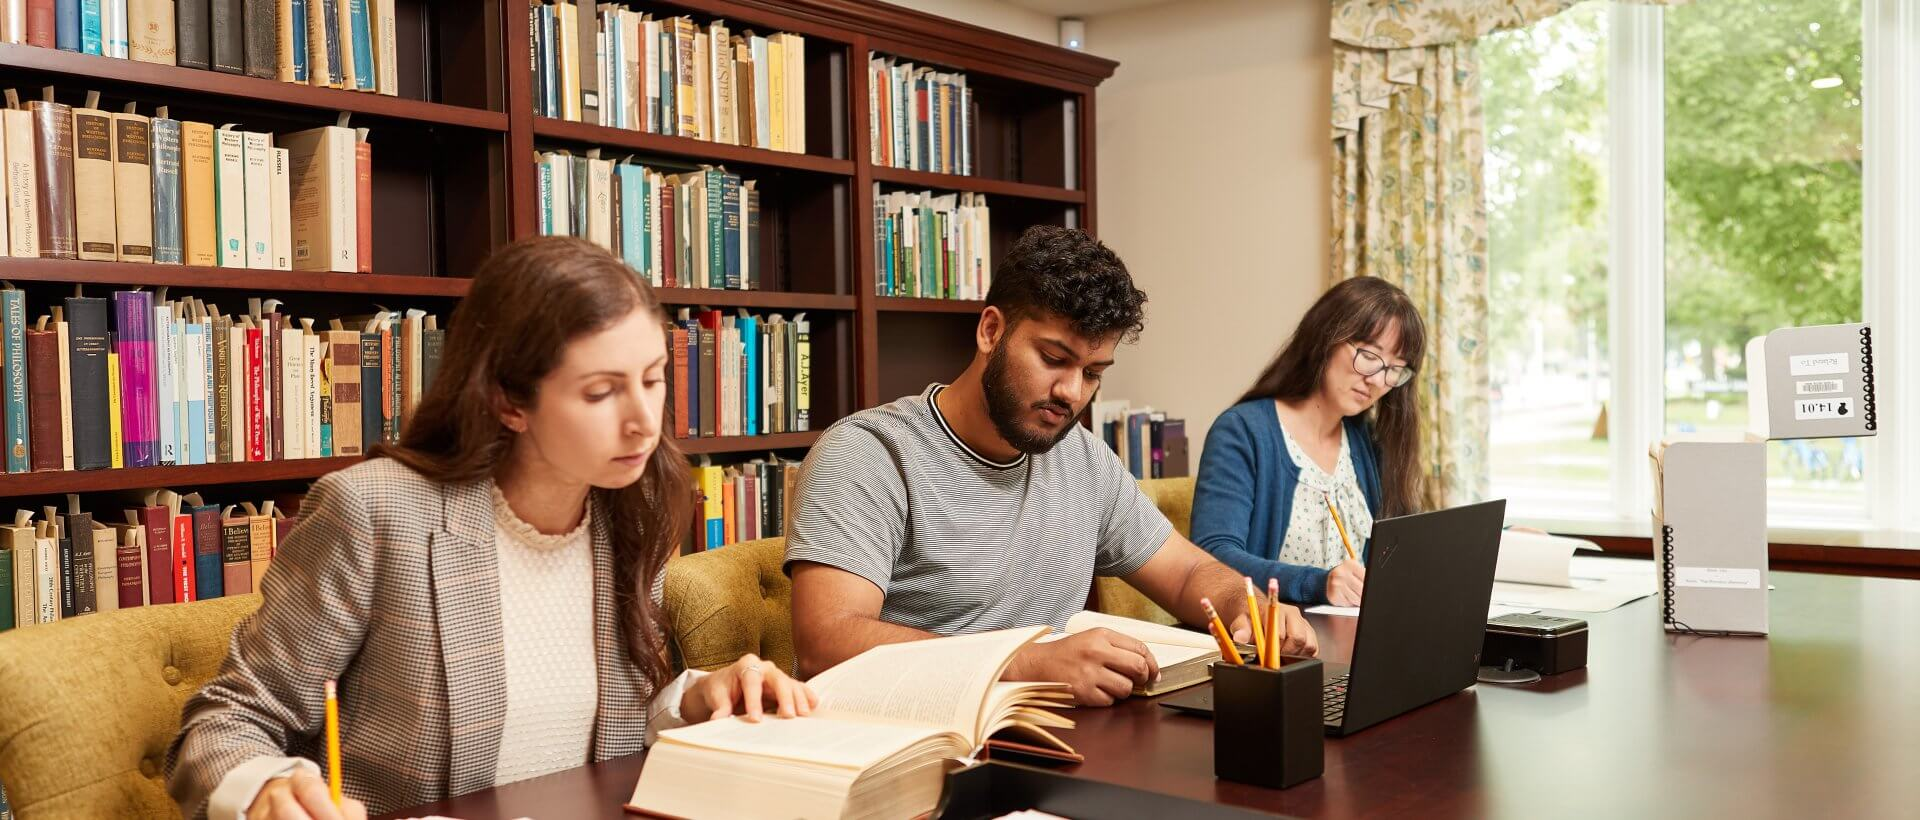 Three students studying in a library